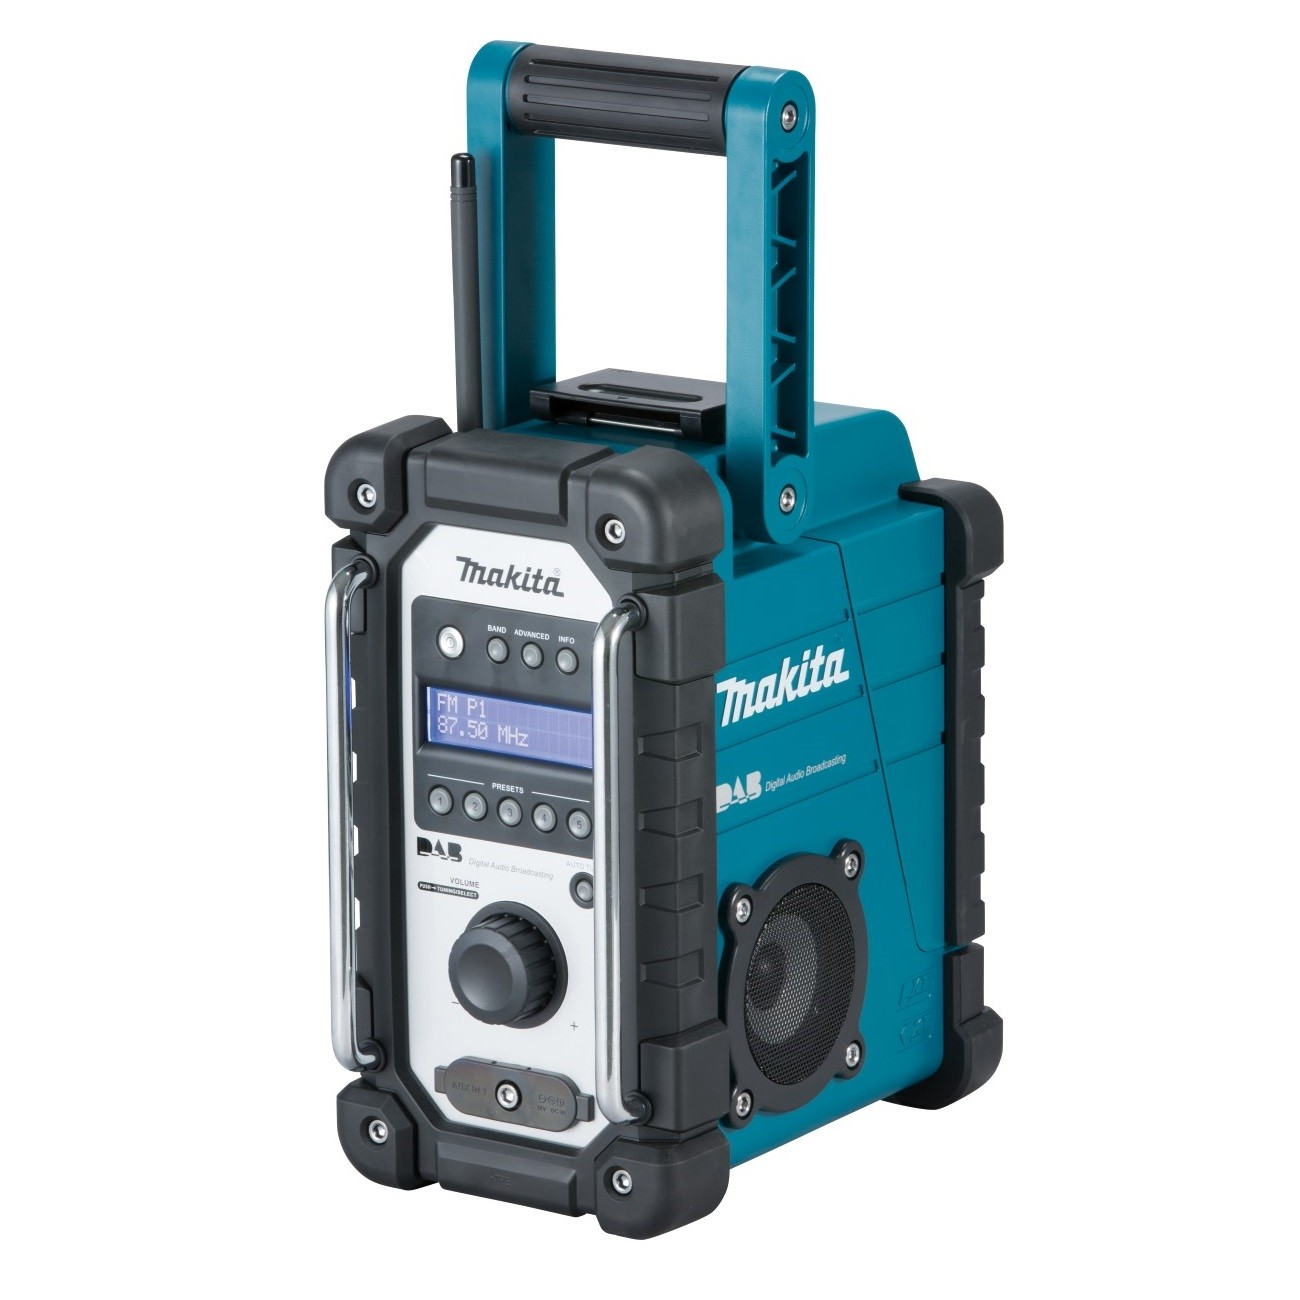 makita dmr109 18v lxt cxt dab fm digital job site radio powertool world. Black Bedroom Furniture Sets. Home Design Ideas